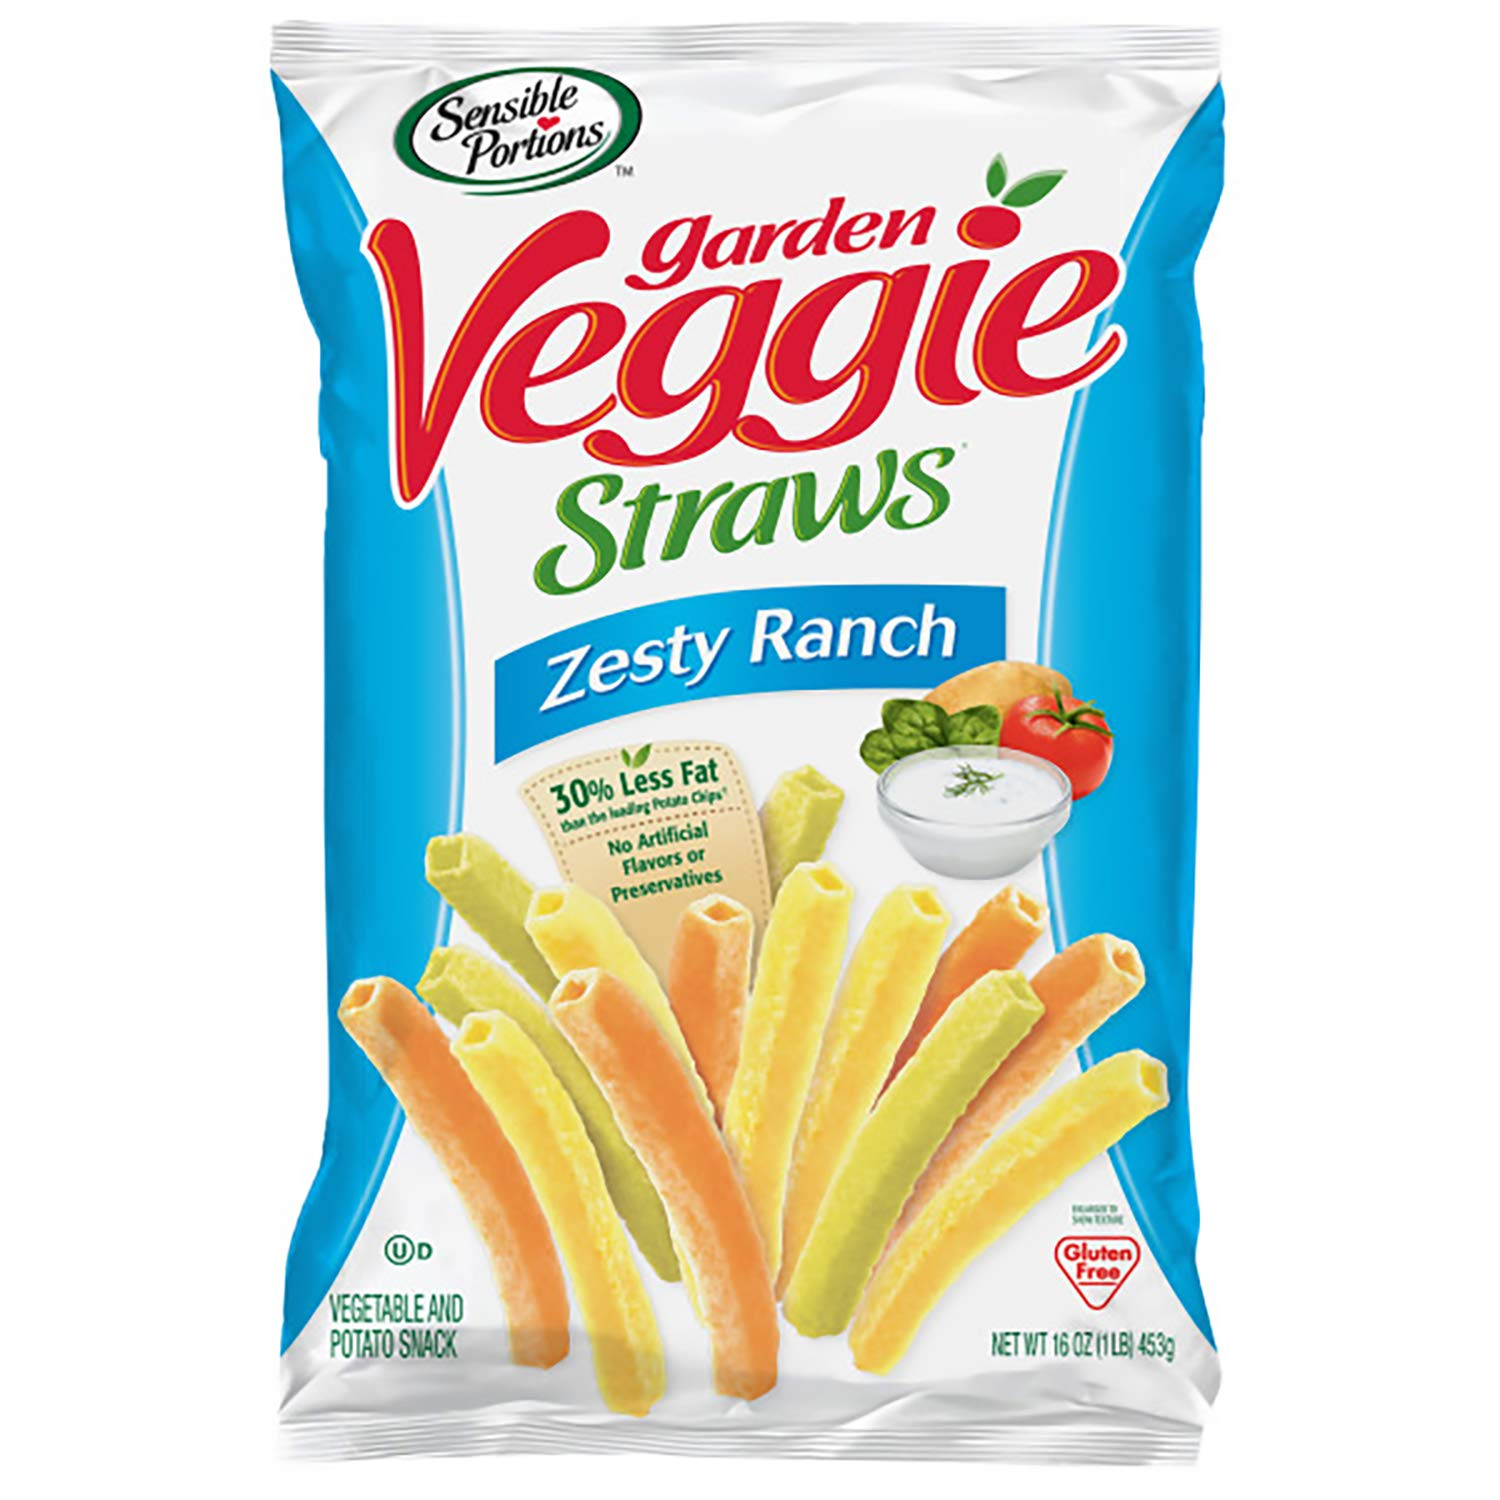 Sensible Portions Garden Veggie Straws, Zesty Ranch, 16 oz. (Pack of 6)